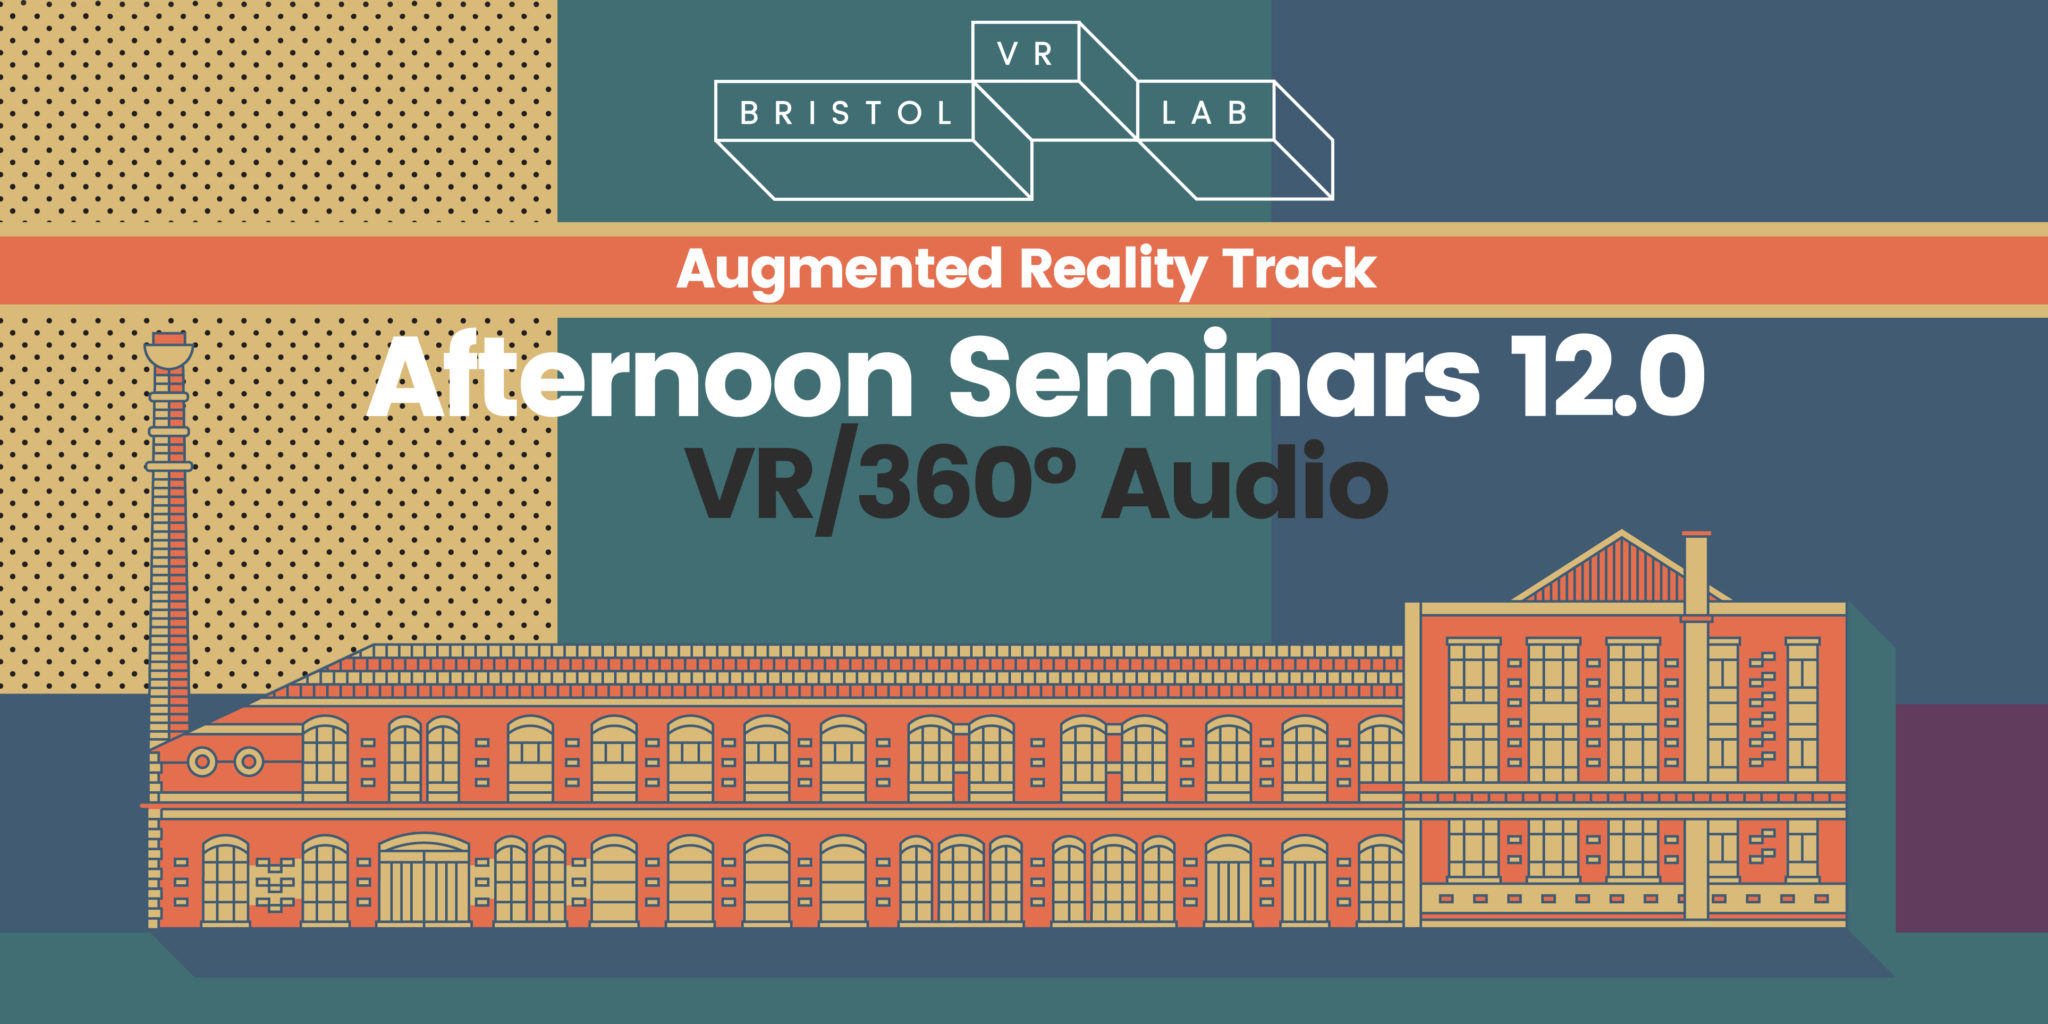 BVRL Afternoon Seminars 12.0 – VR/360° Audio